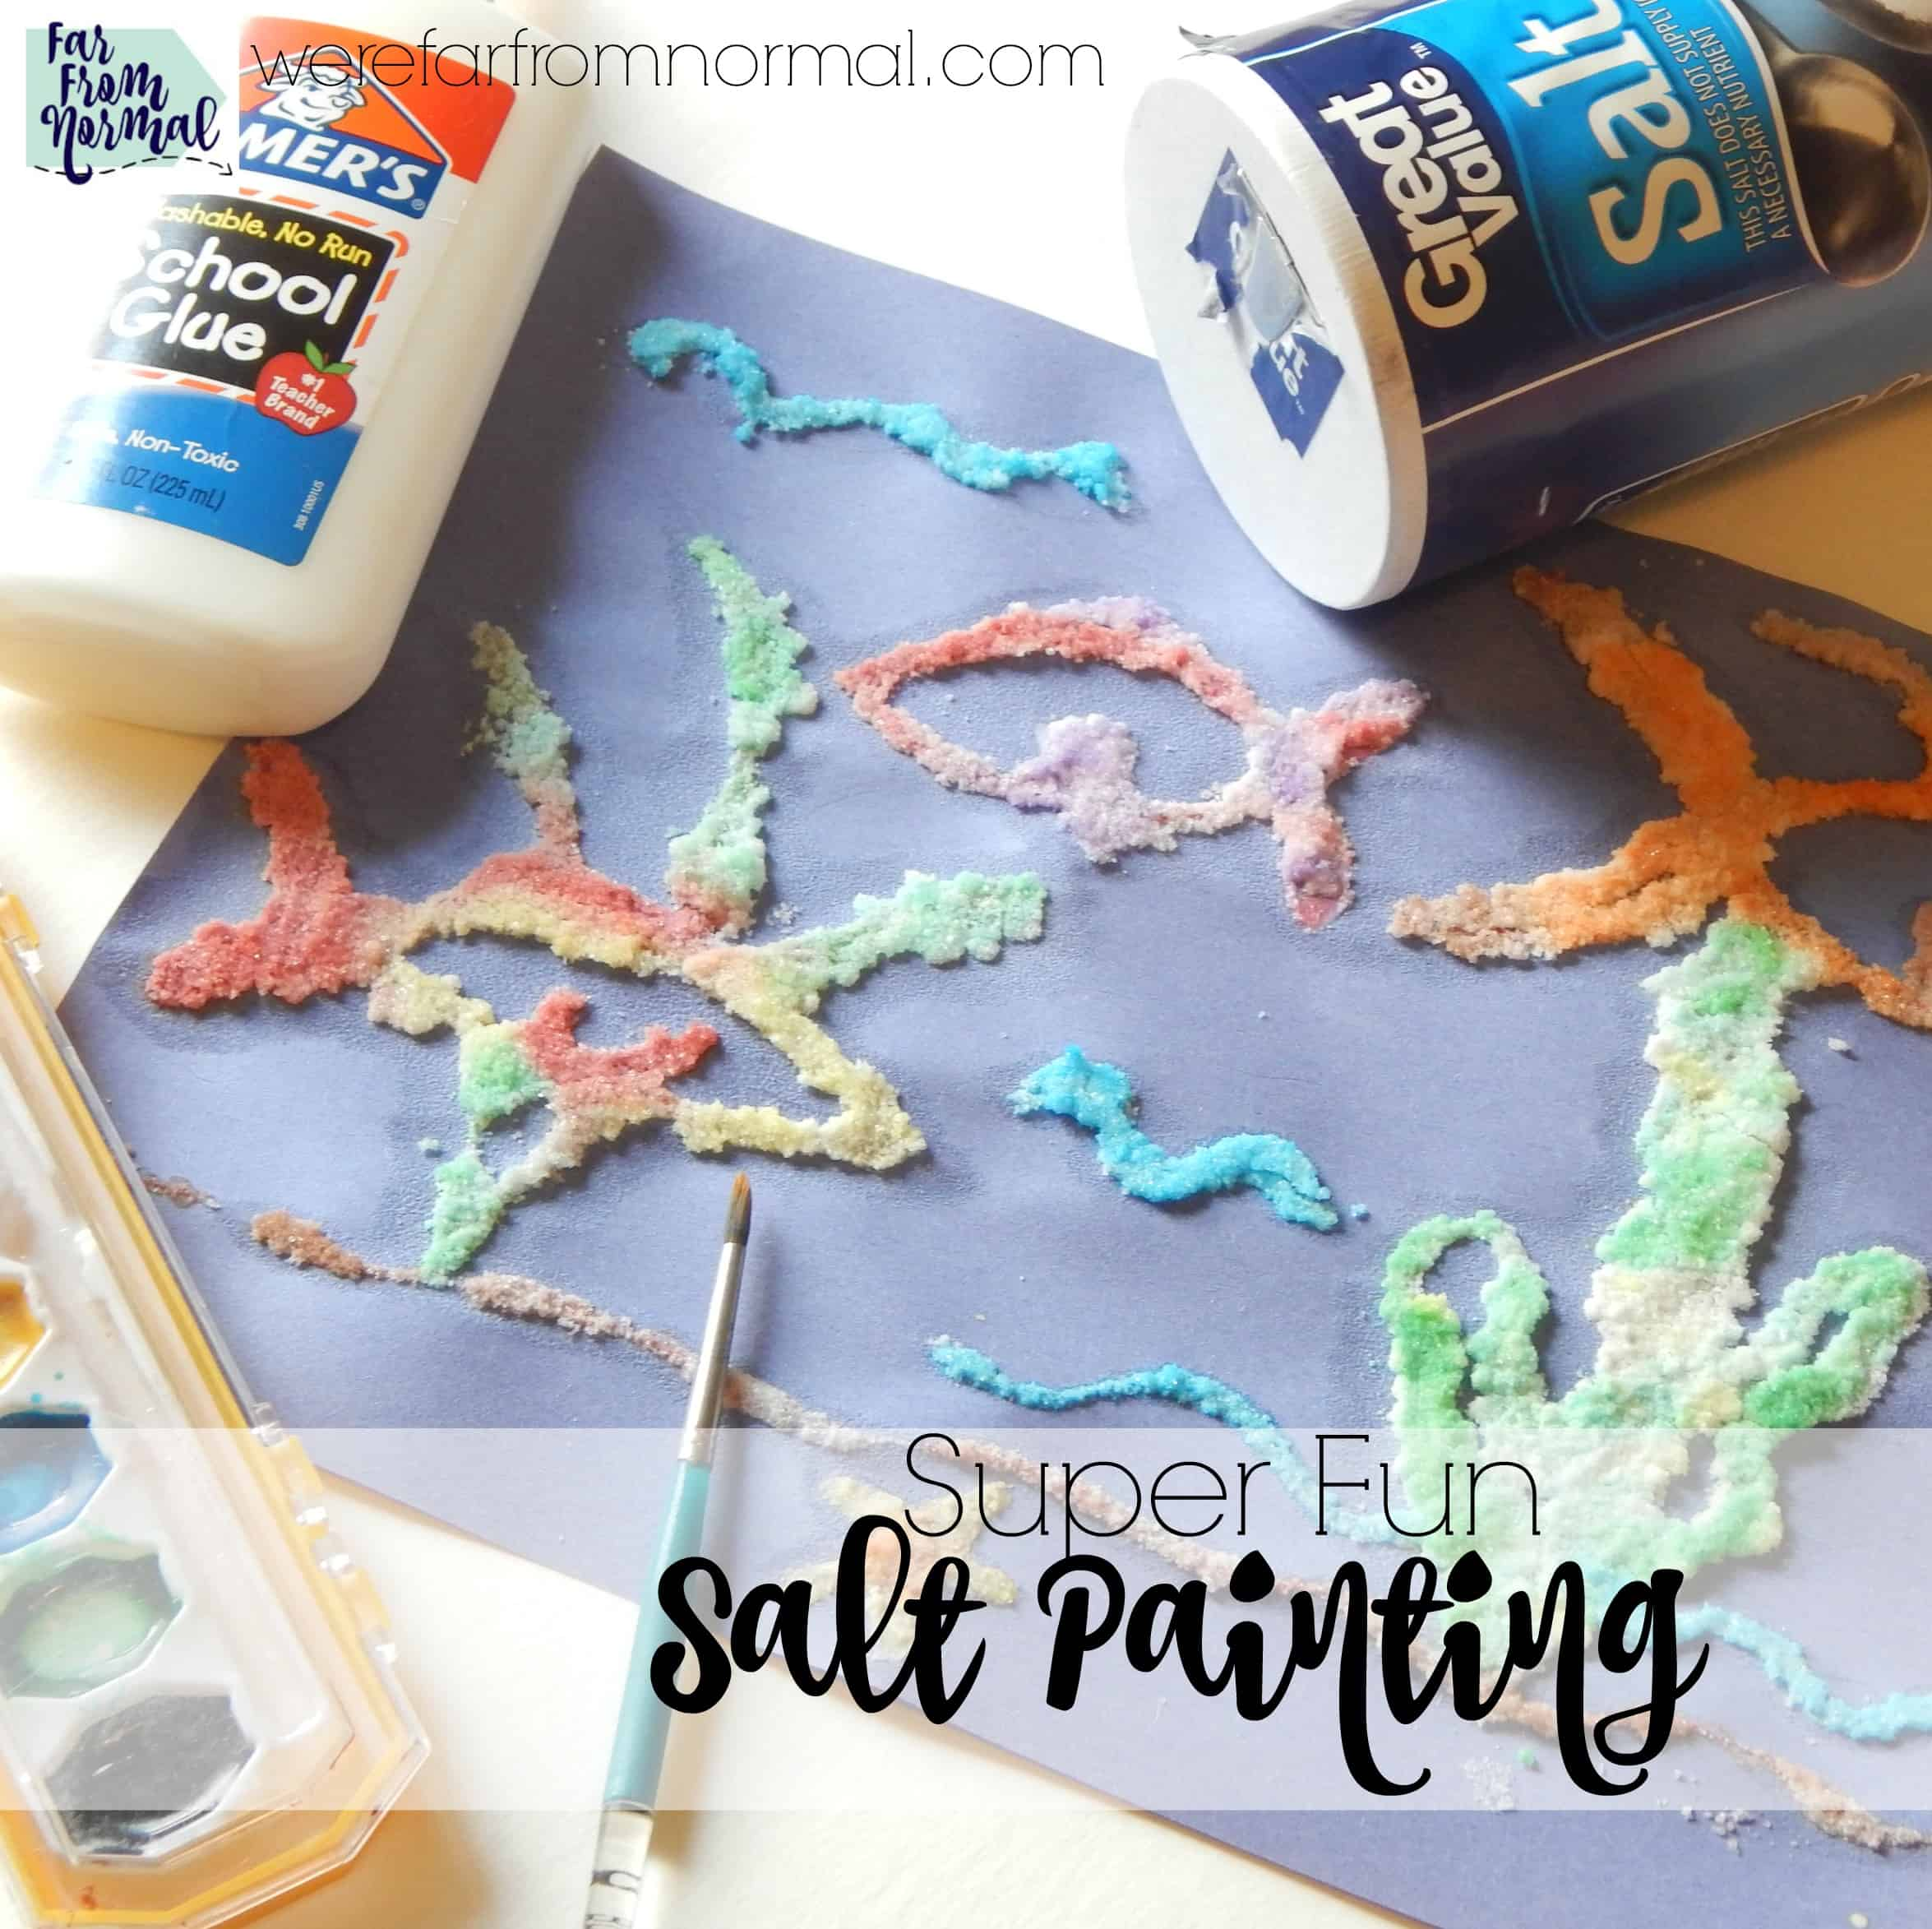 Super Fun Salt Painting (and 200+ painting ideas!!)